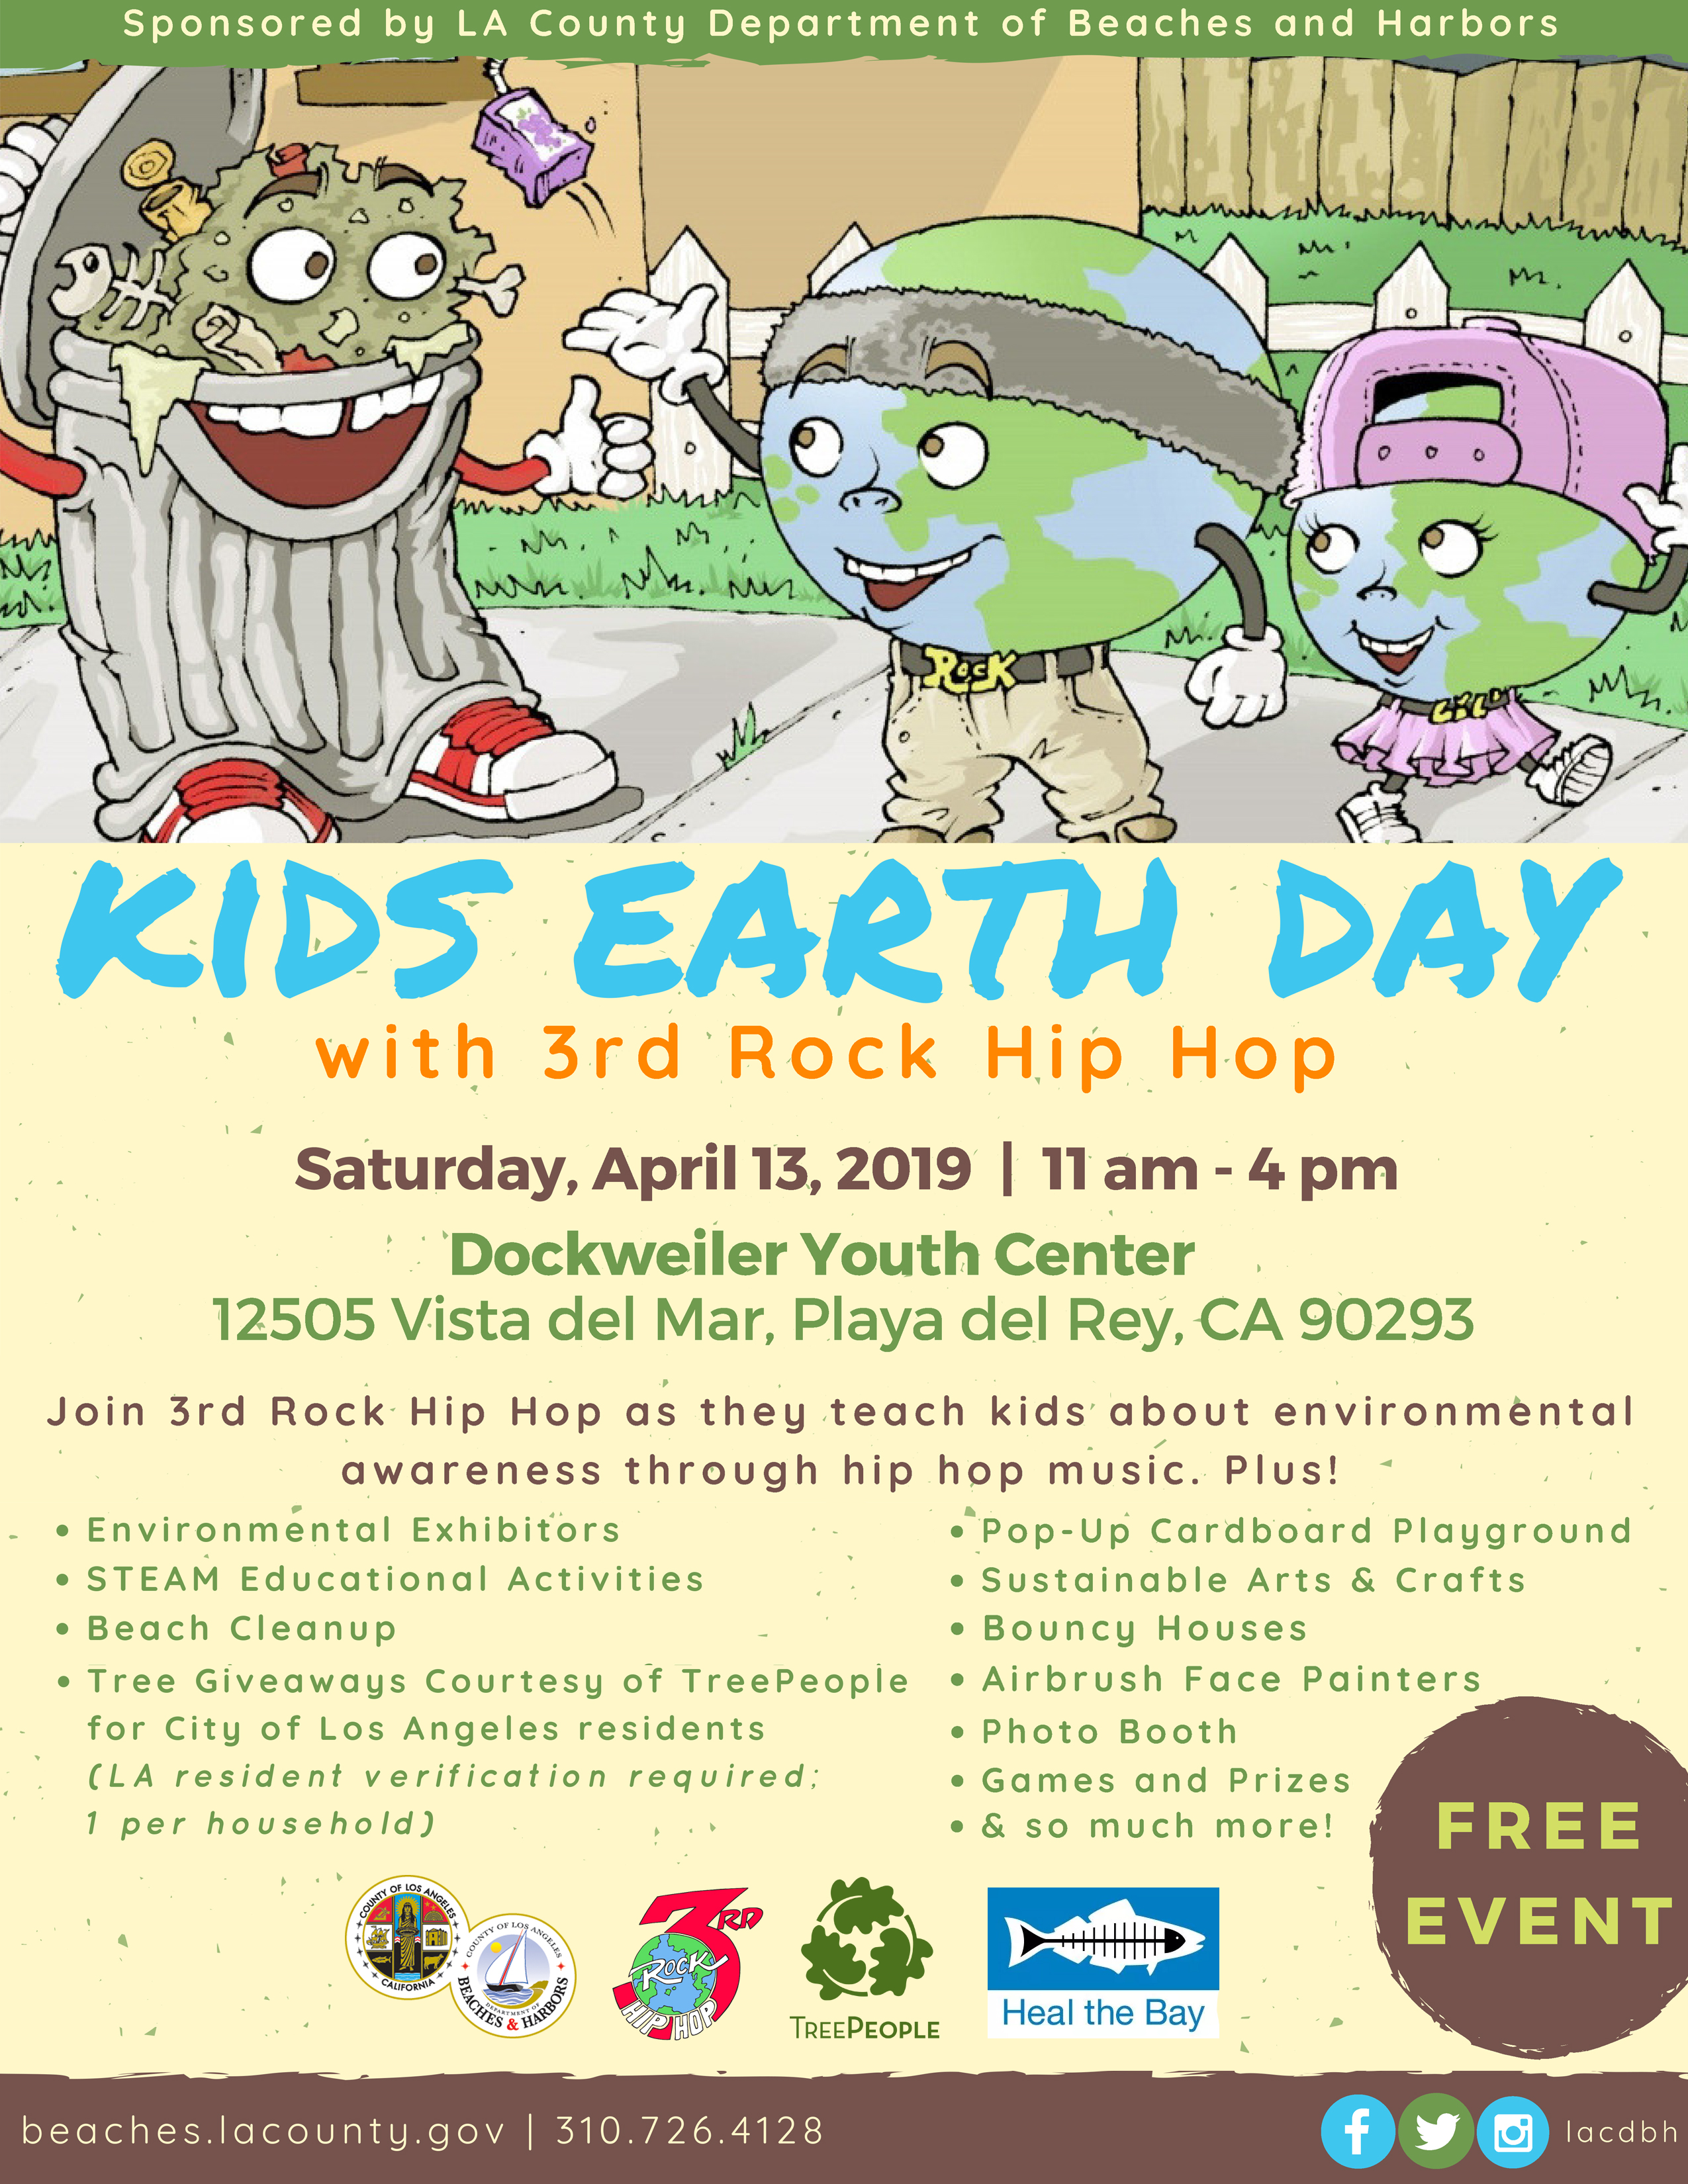 2019 Kids Earth Day Event Flyer